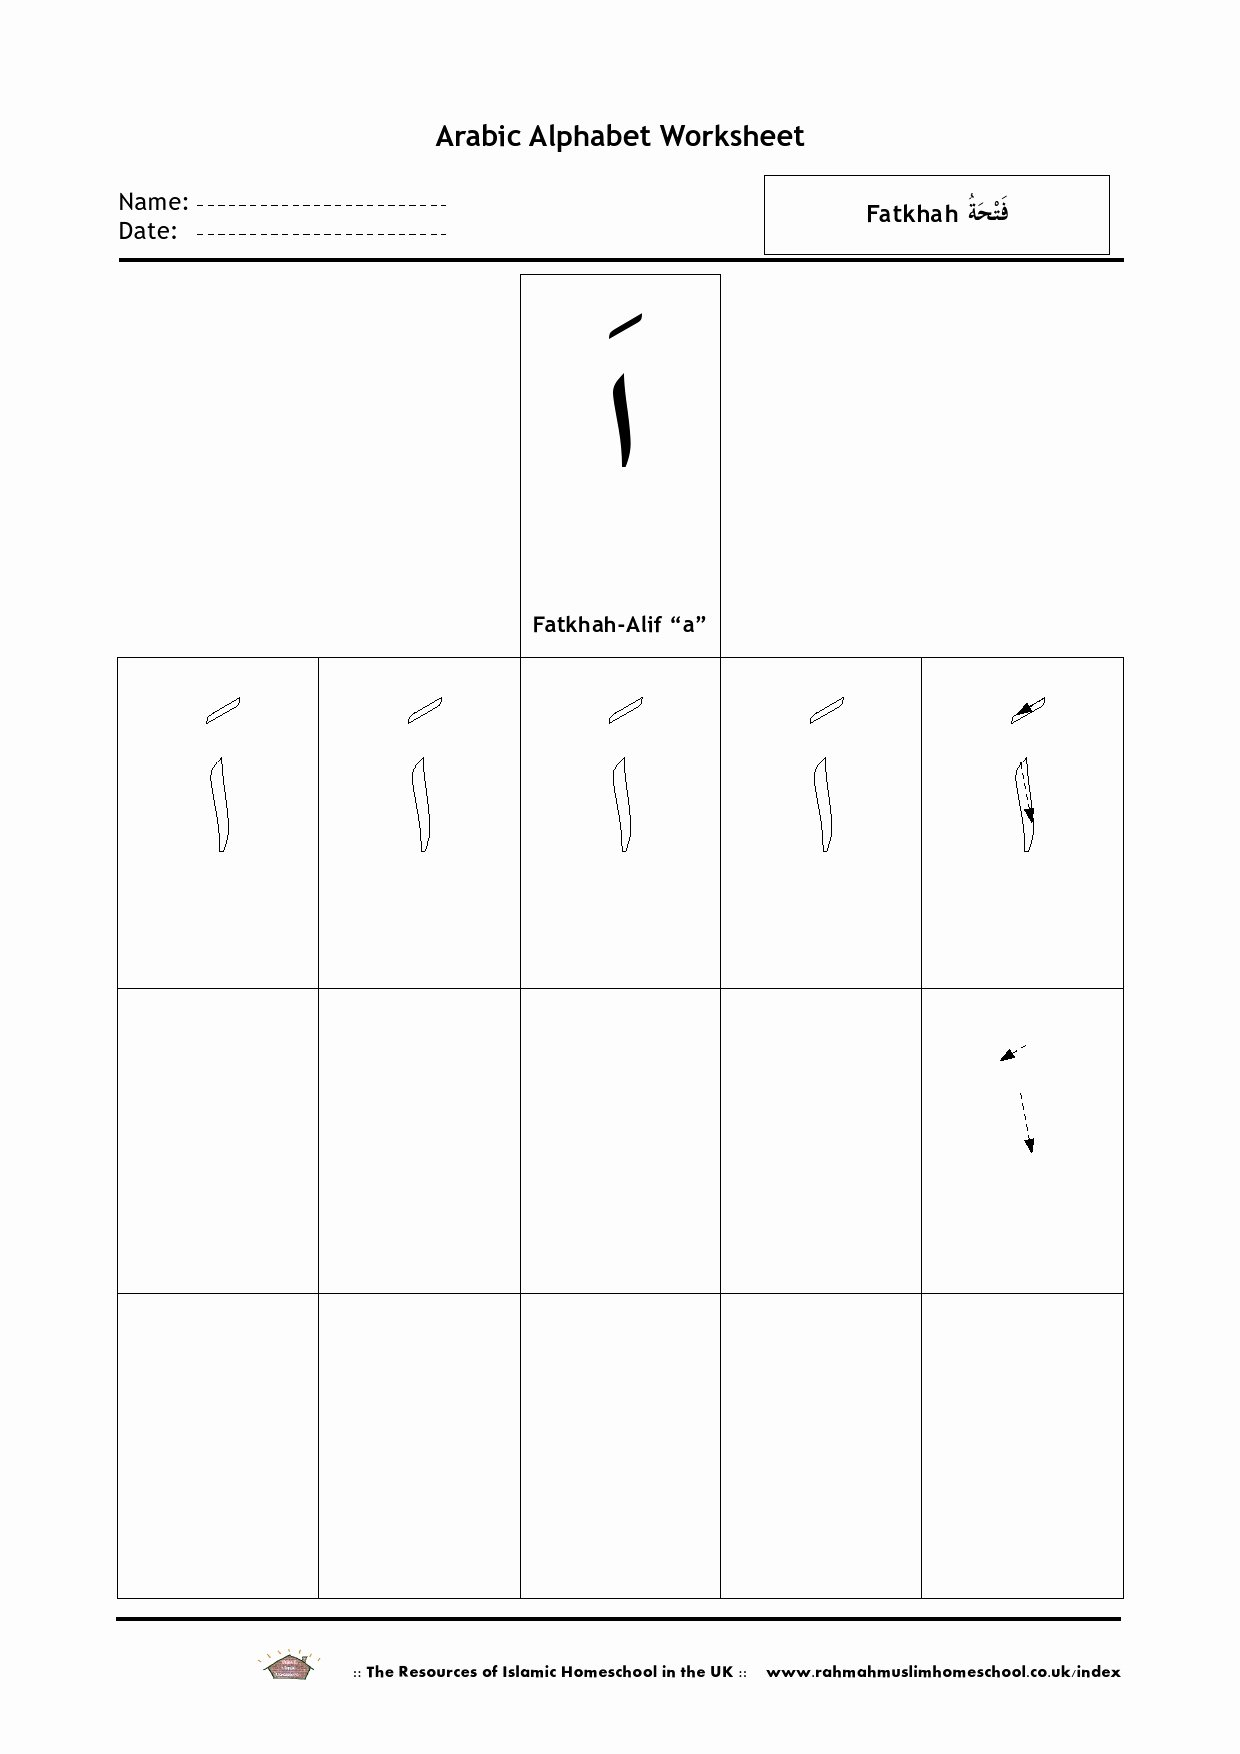 "Arabic Alphabet Worksheets Printable Luxury Free Arabic Alphabet Worksheet Fatkhah Alif ""a"" اَ"